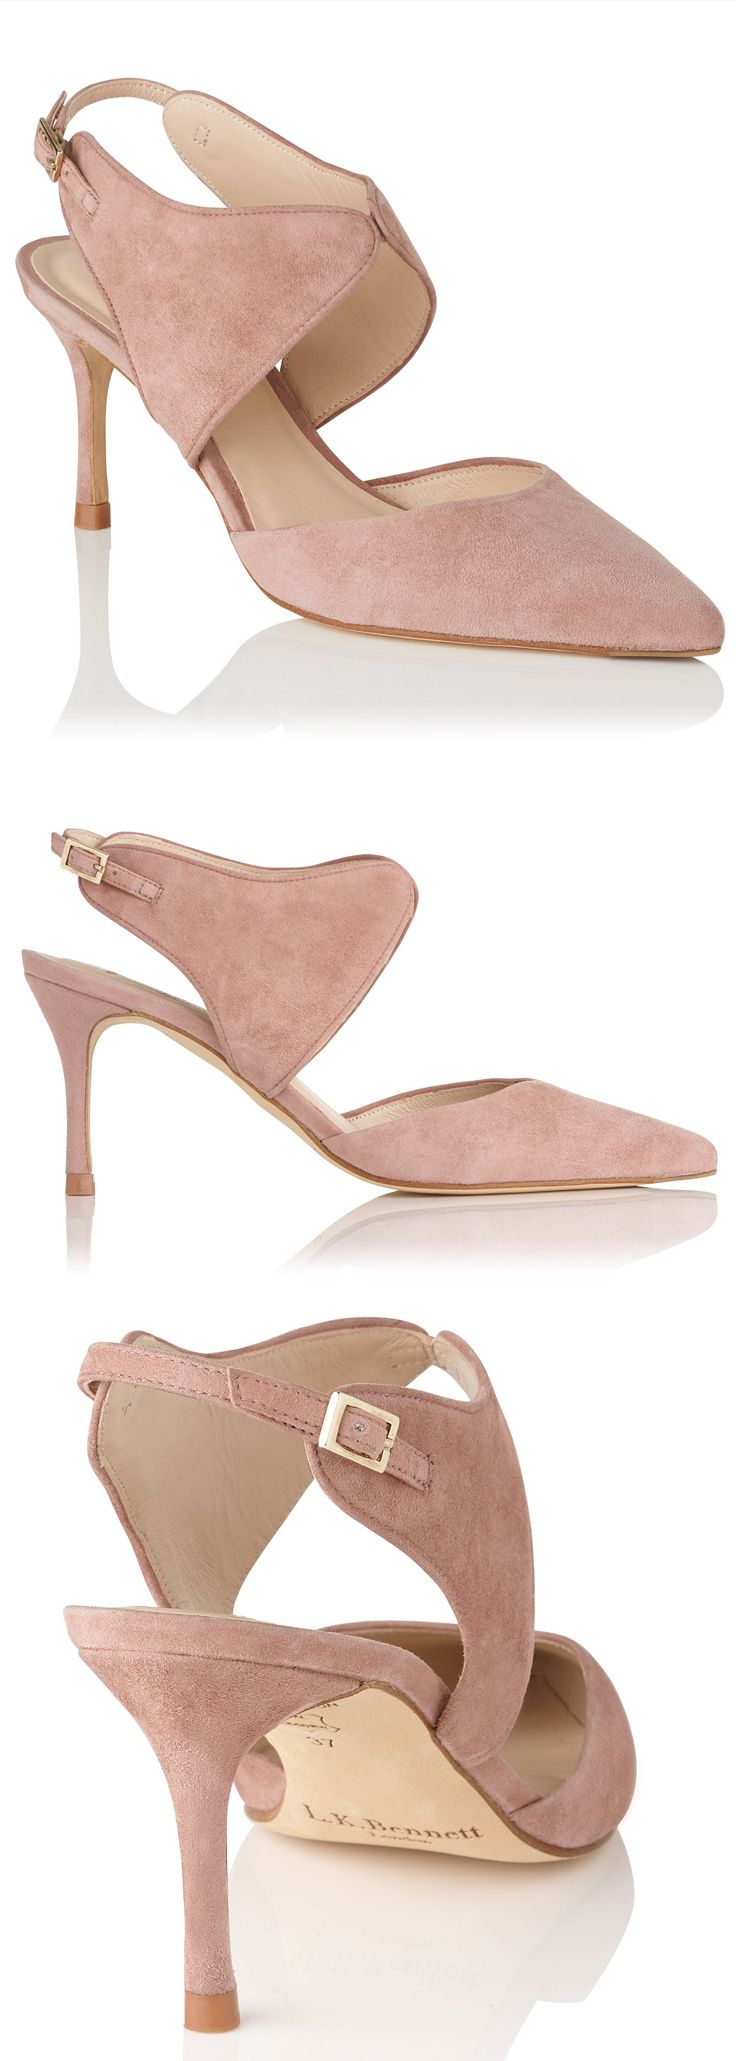 L.K. Bennett Cecily courts are a fashion-forward alternative to pumps. New AW17 Nude Shoes. Comfy Mother of the Bride Shoes. Crafted in Spain from soft suede, with a winged ankle strap. Court Shoes, Stiletto heel, Pointed toe, Suede Leather, High Heel. #fashion #nudeshoes #heels #aw17 #winter #winterfashion #motherofthebride #affiliatelink #weddings